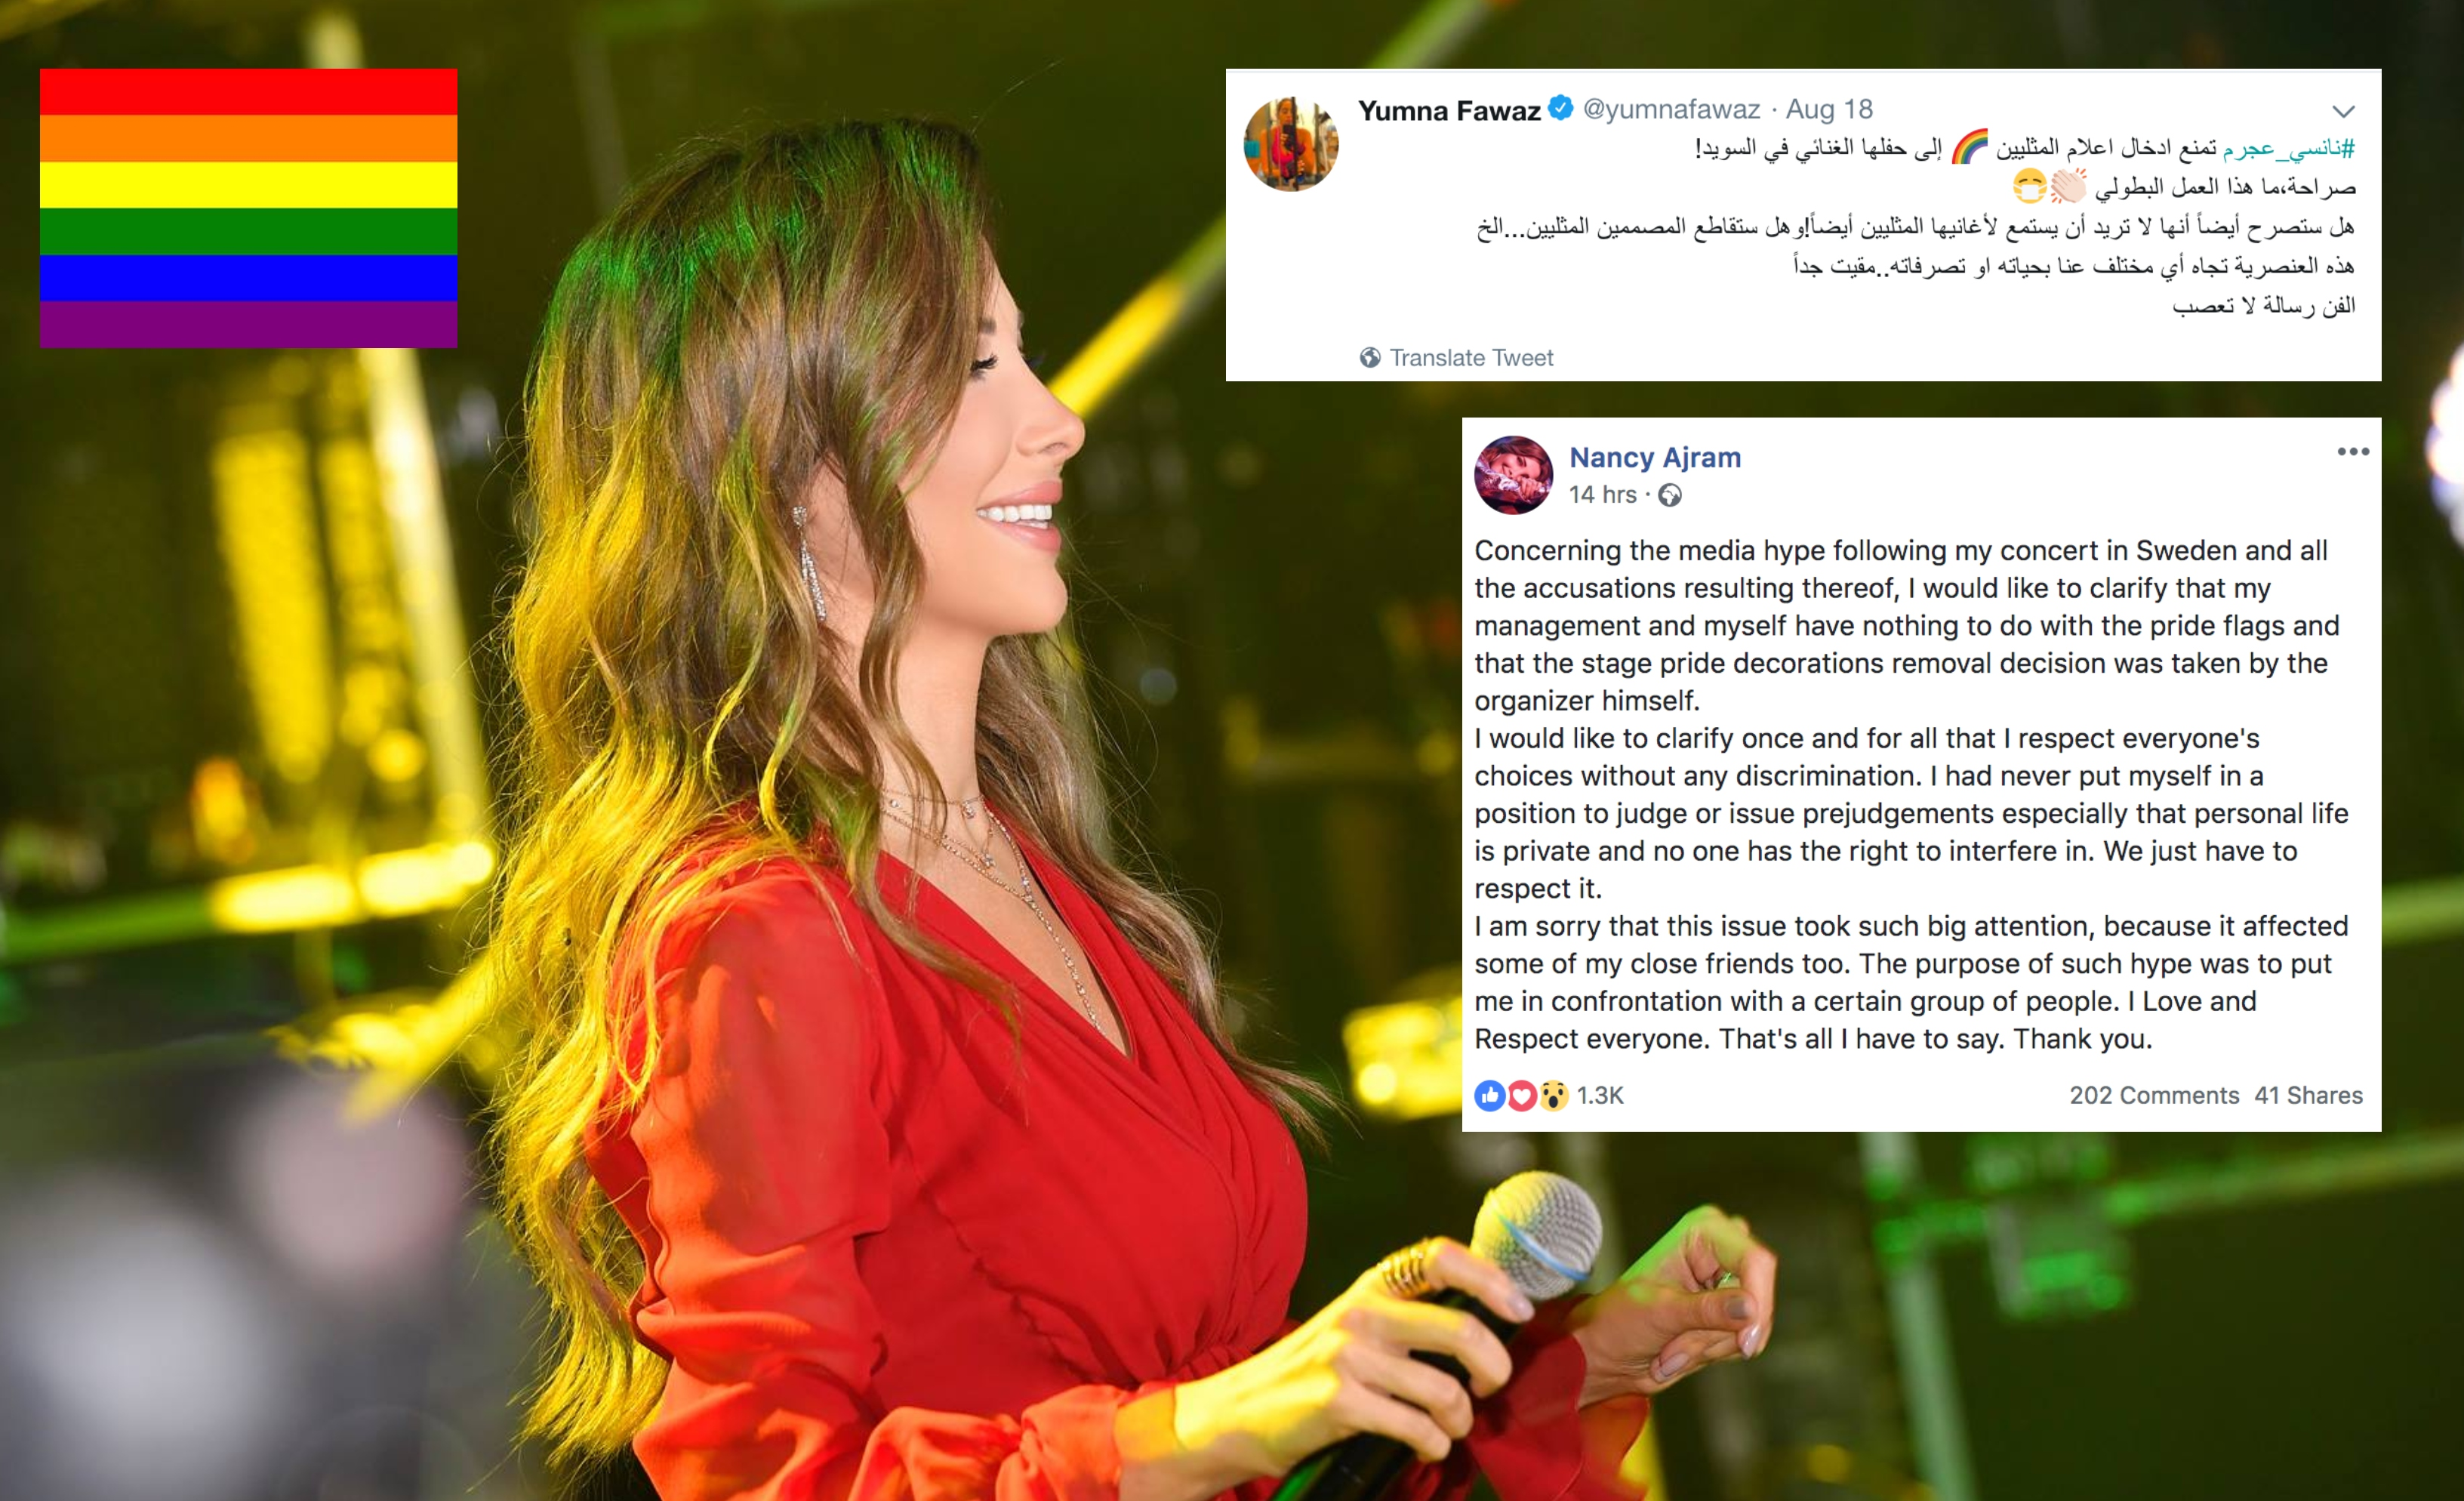 Nancy Ajram supports the LGBT+ community after controversy in Sweden